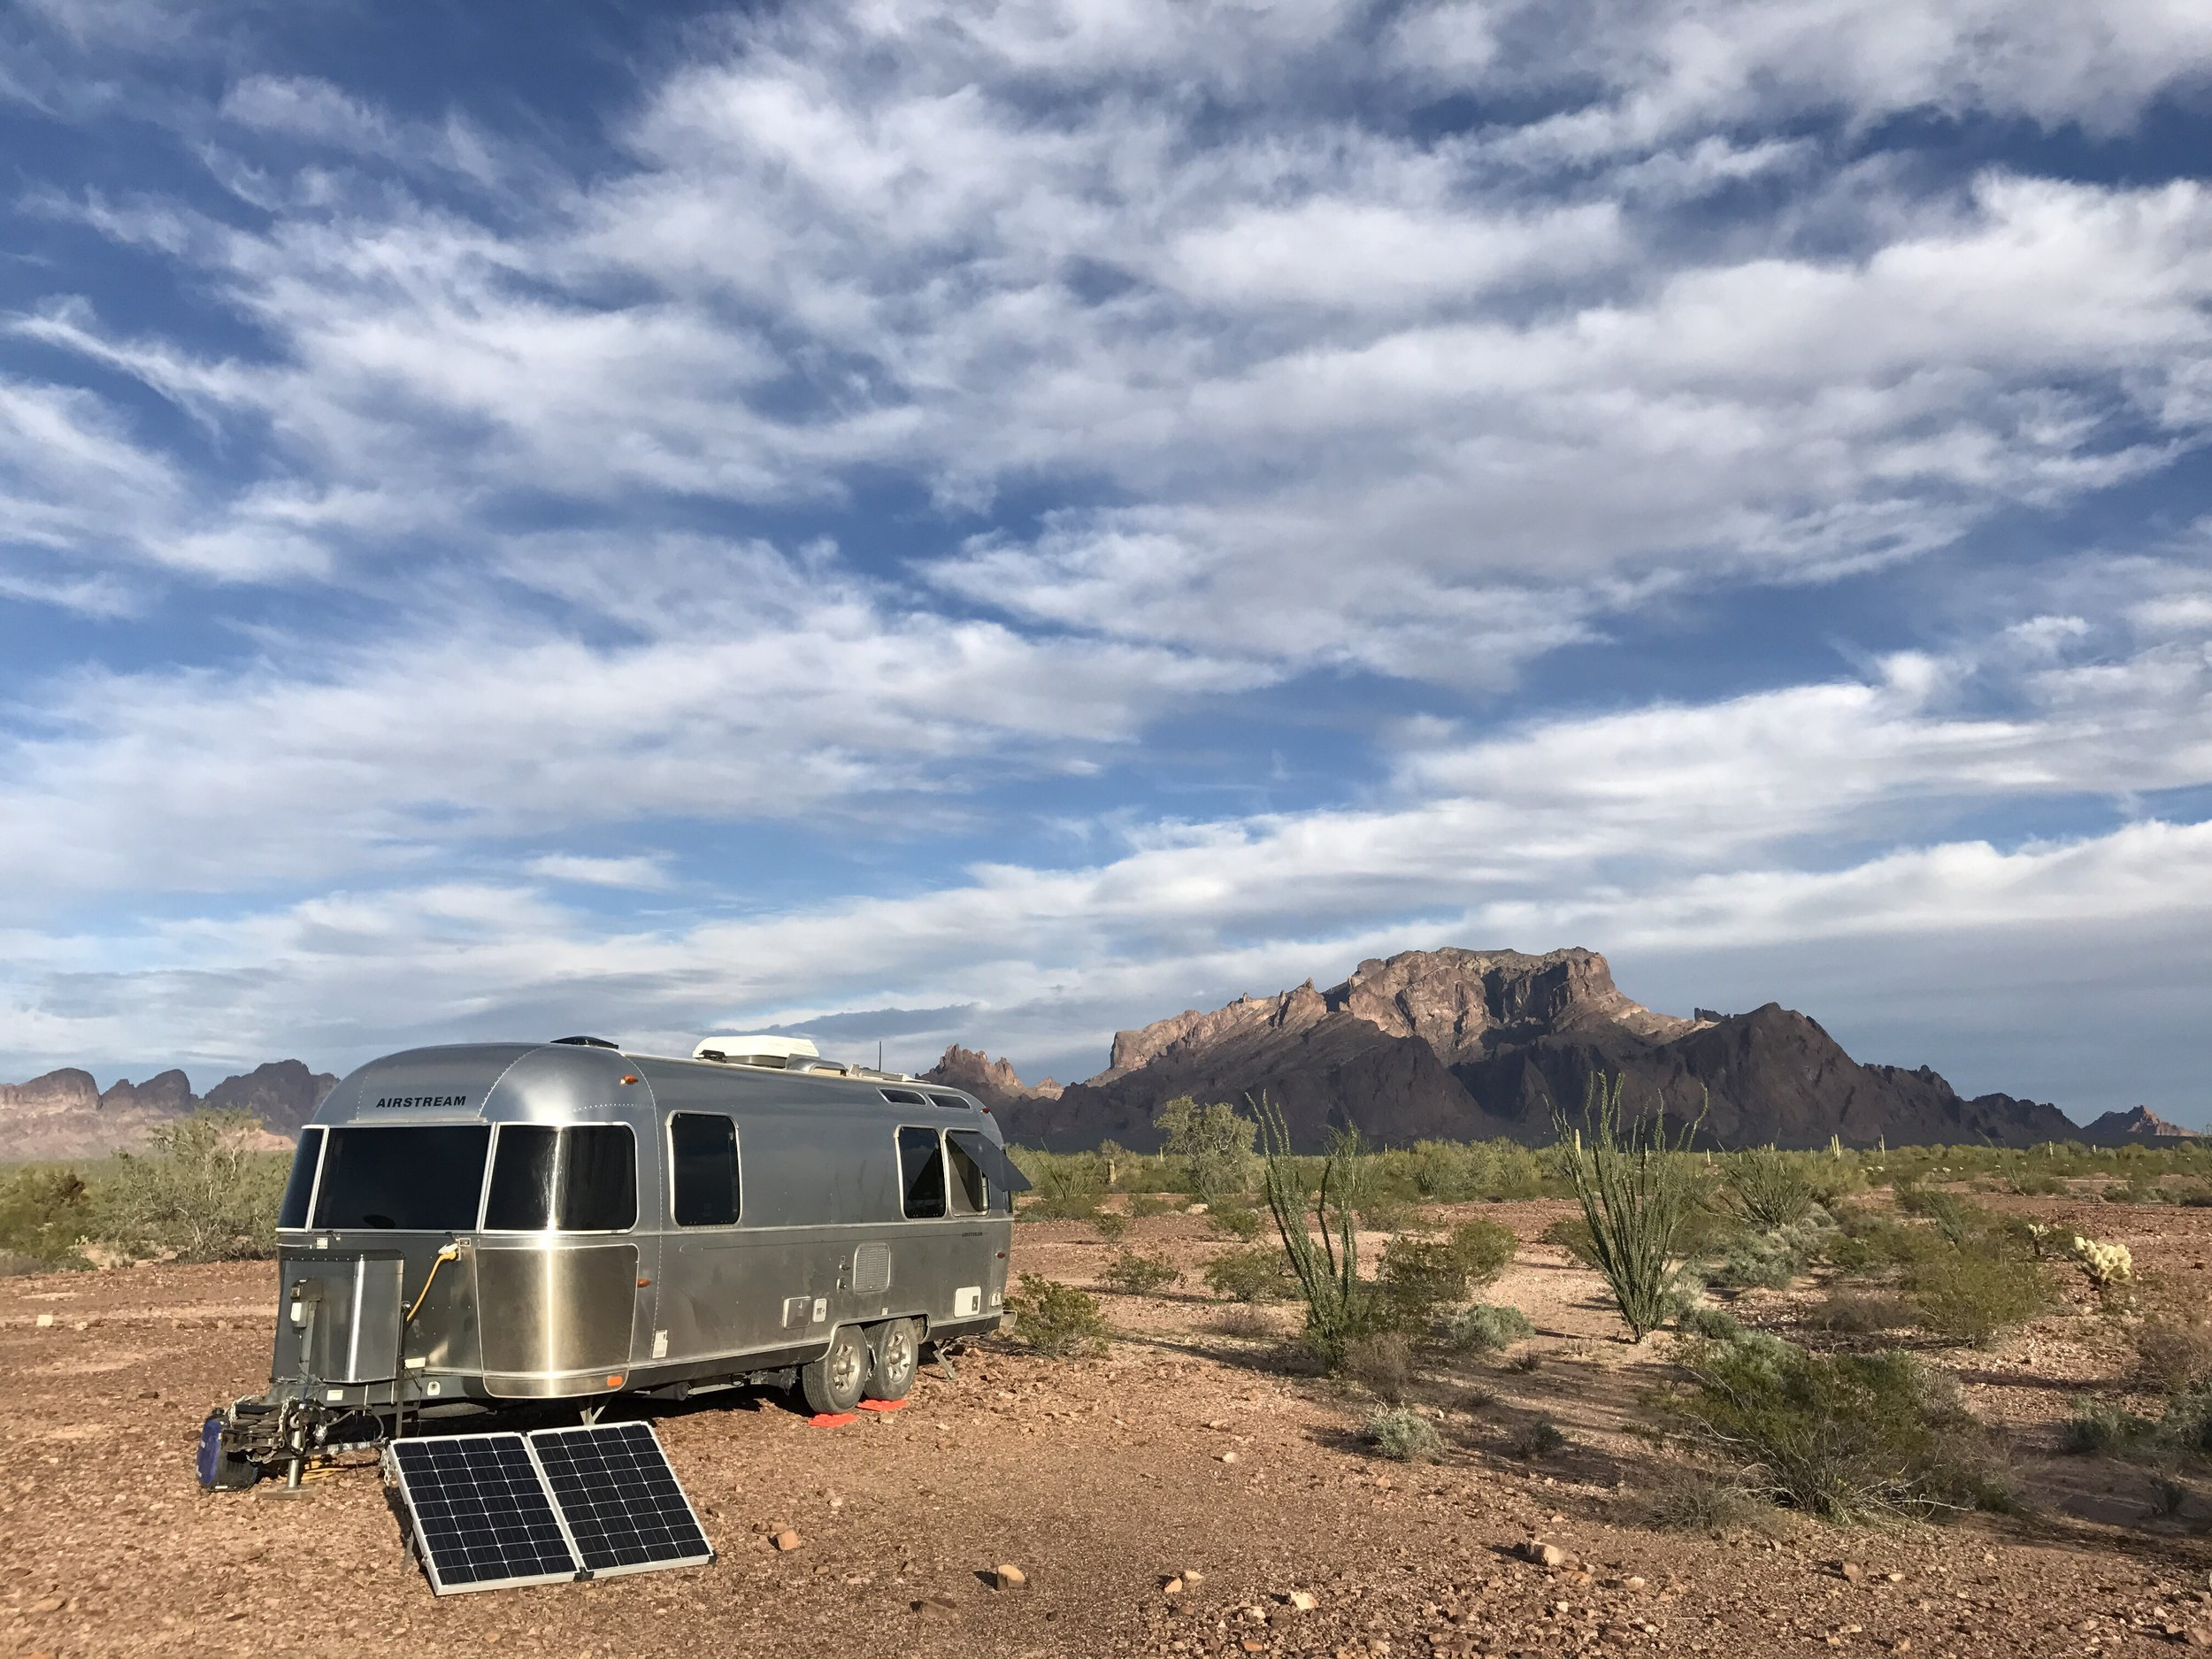 medium resolution of 40 things we would change on our airstream trailer nature photo guides